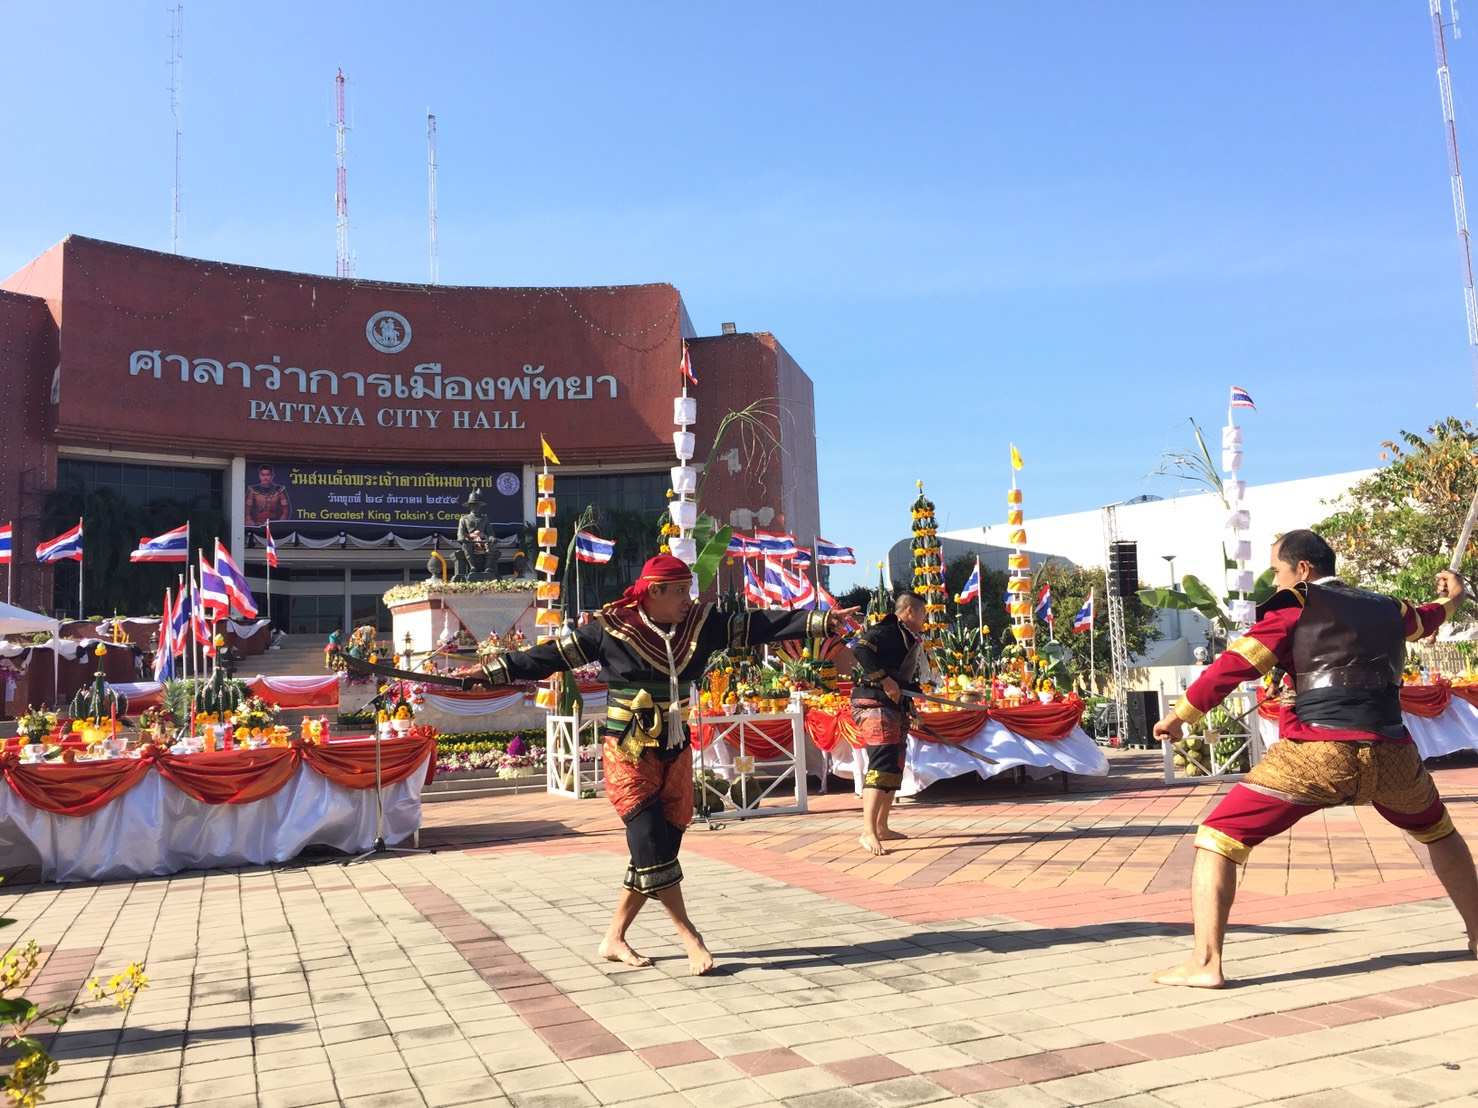 Celebrations of King Taksin Day included demonstrations of traditional Thai boxing, sword fighting, and more in front of the King Taksin monument at Pattaya City Hall.